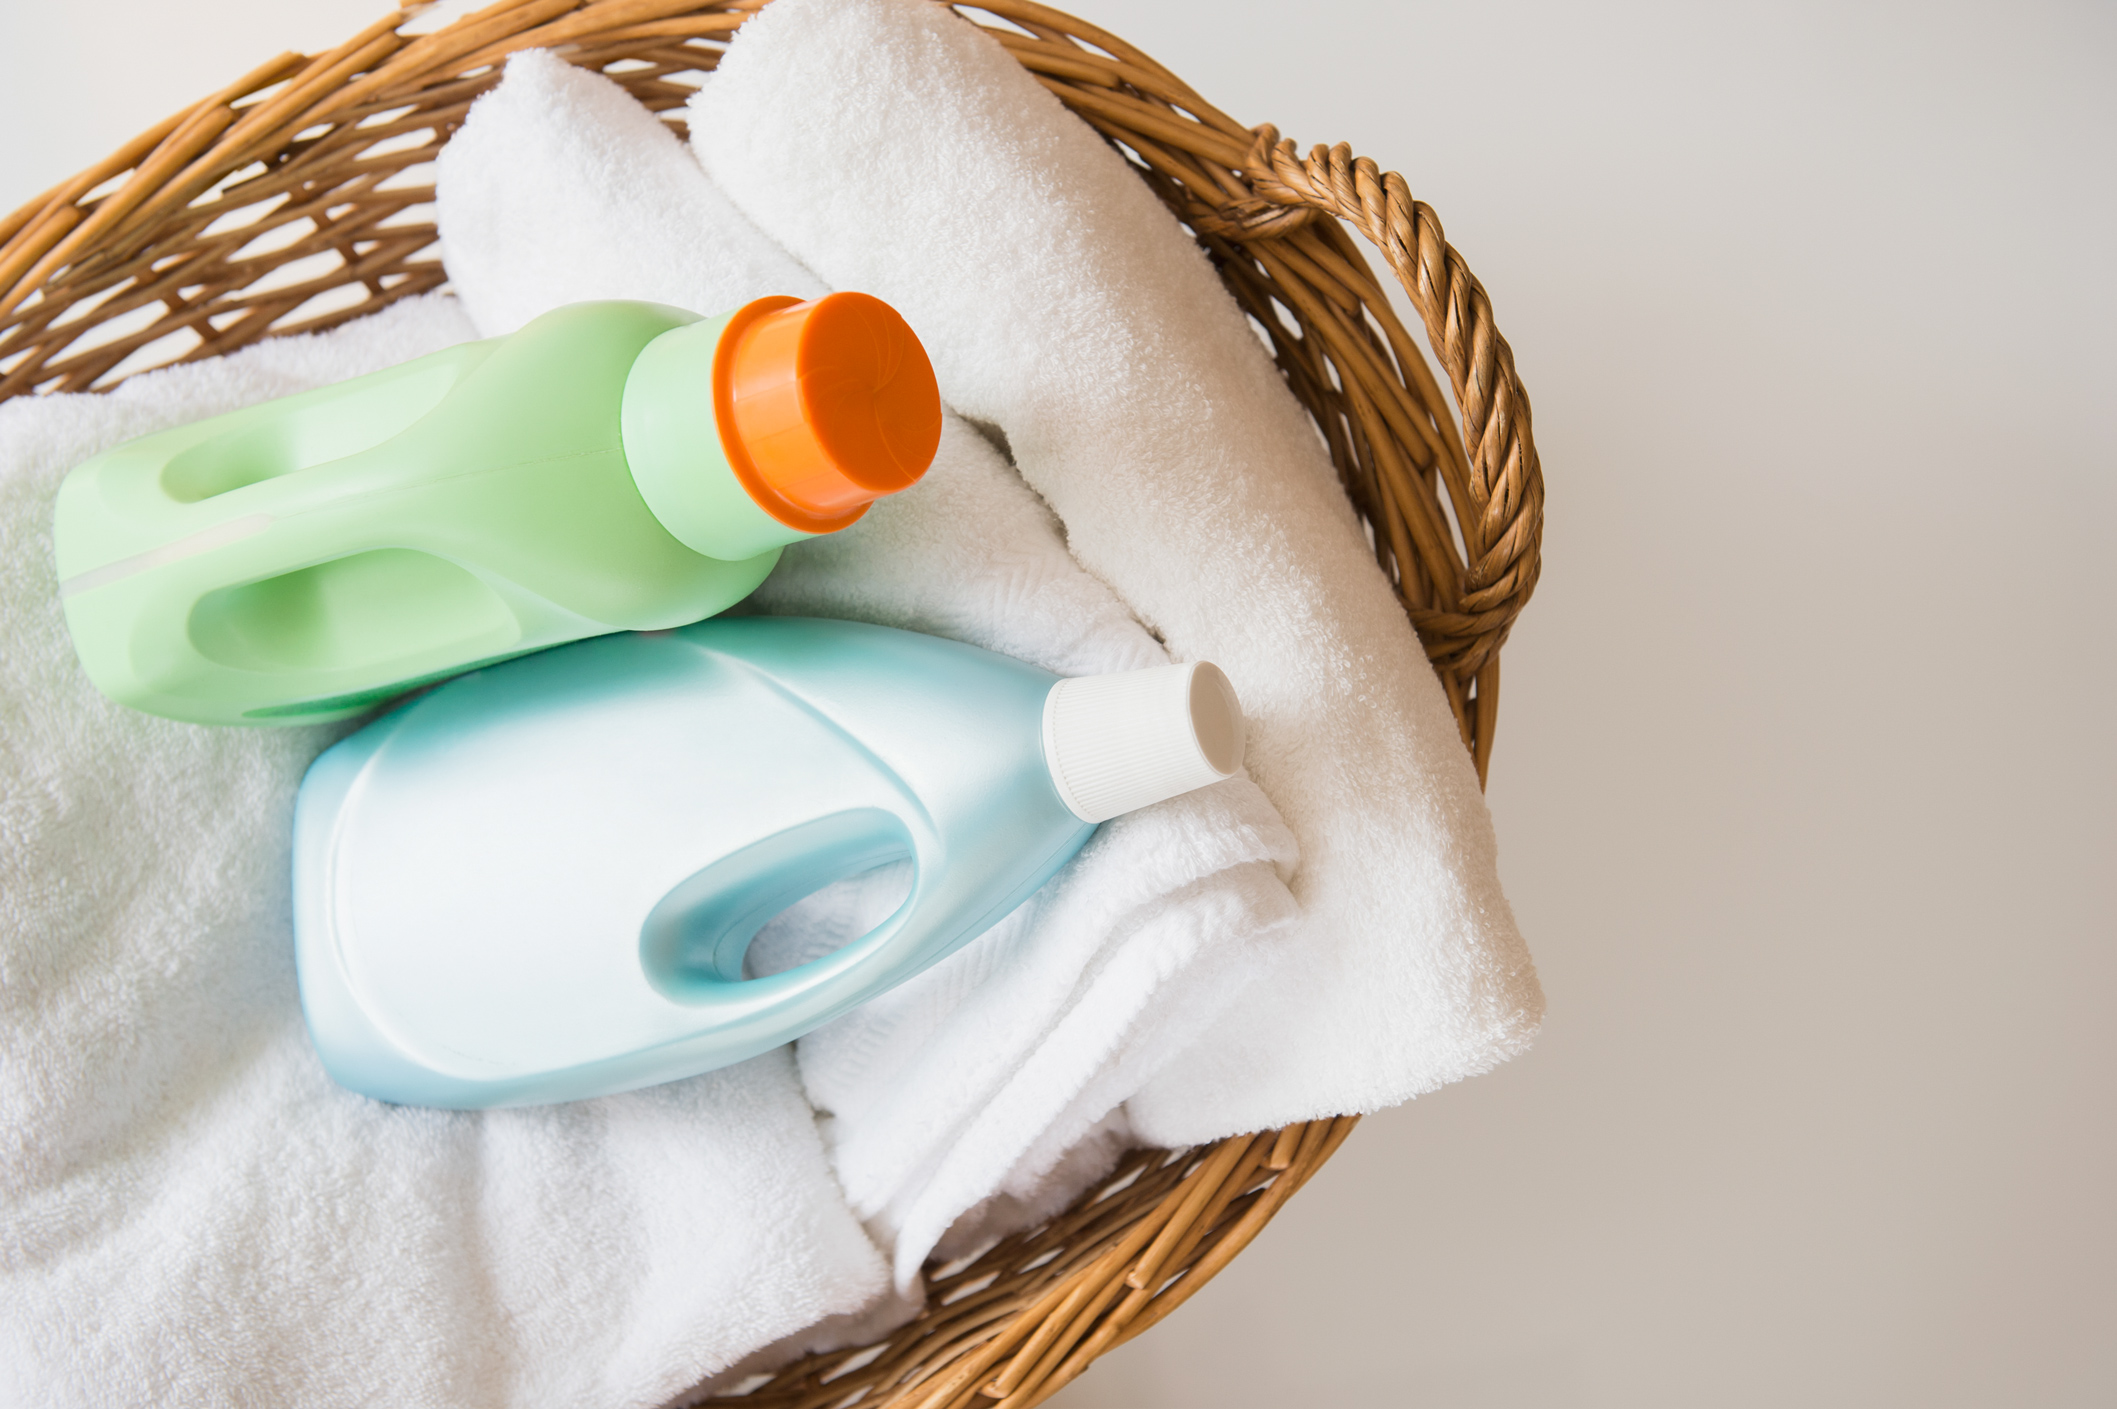 woven laundry basket with detergent and towels